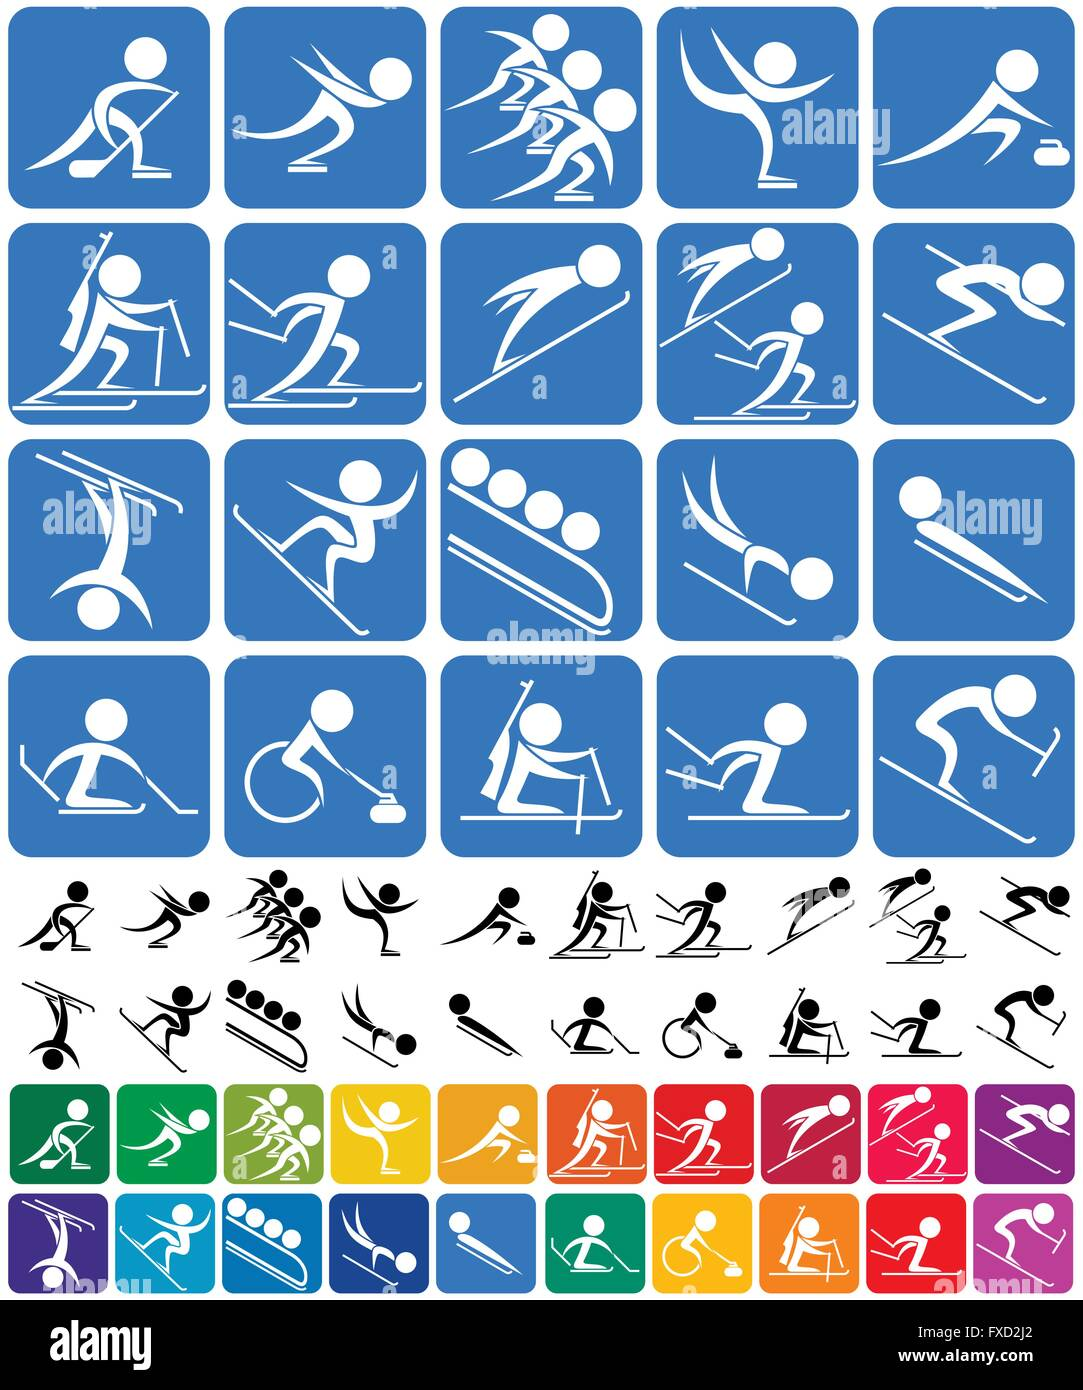 Set of 20 pictograms of the Olympic winter sports, in 3 versions. No transparency and gradients used. - Stock Vector